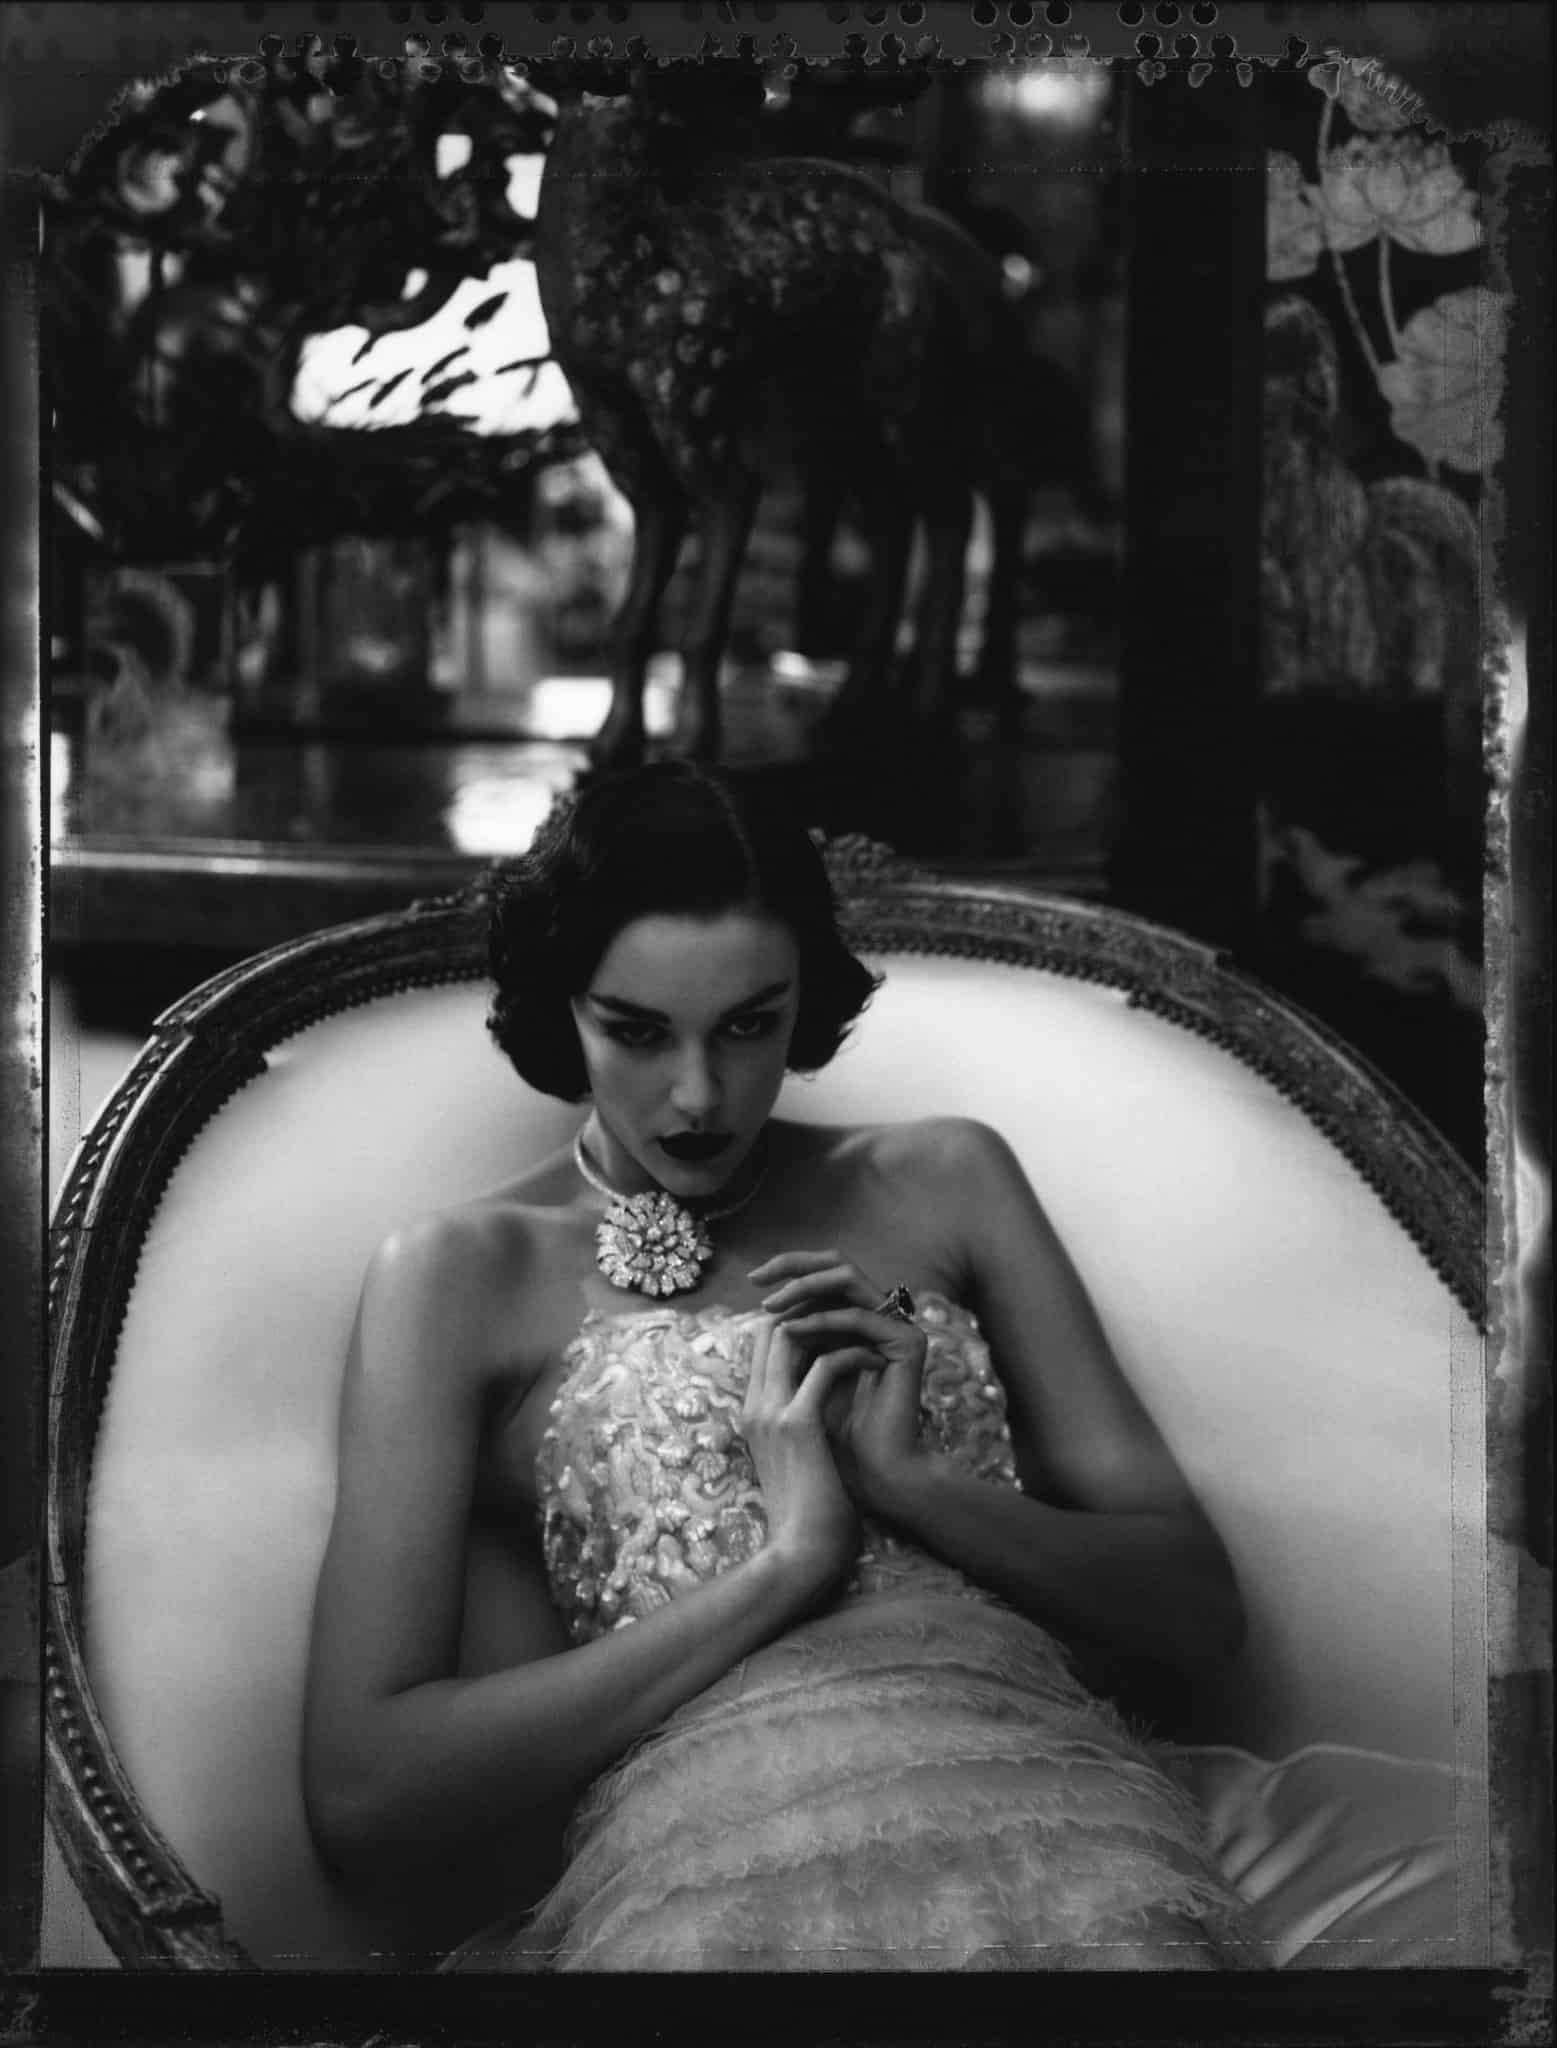 Fine art b/w photography of a fashion model wearing haute couture CHANEL by Karl Lagerfeld and haute jewellery CHANEL, photographed at the apartment of Coco Chanel, rue Cambon.